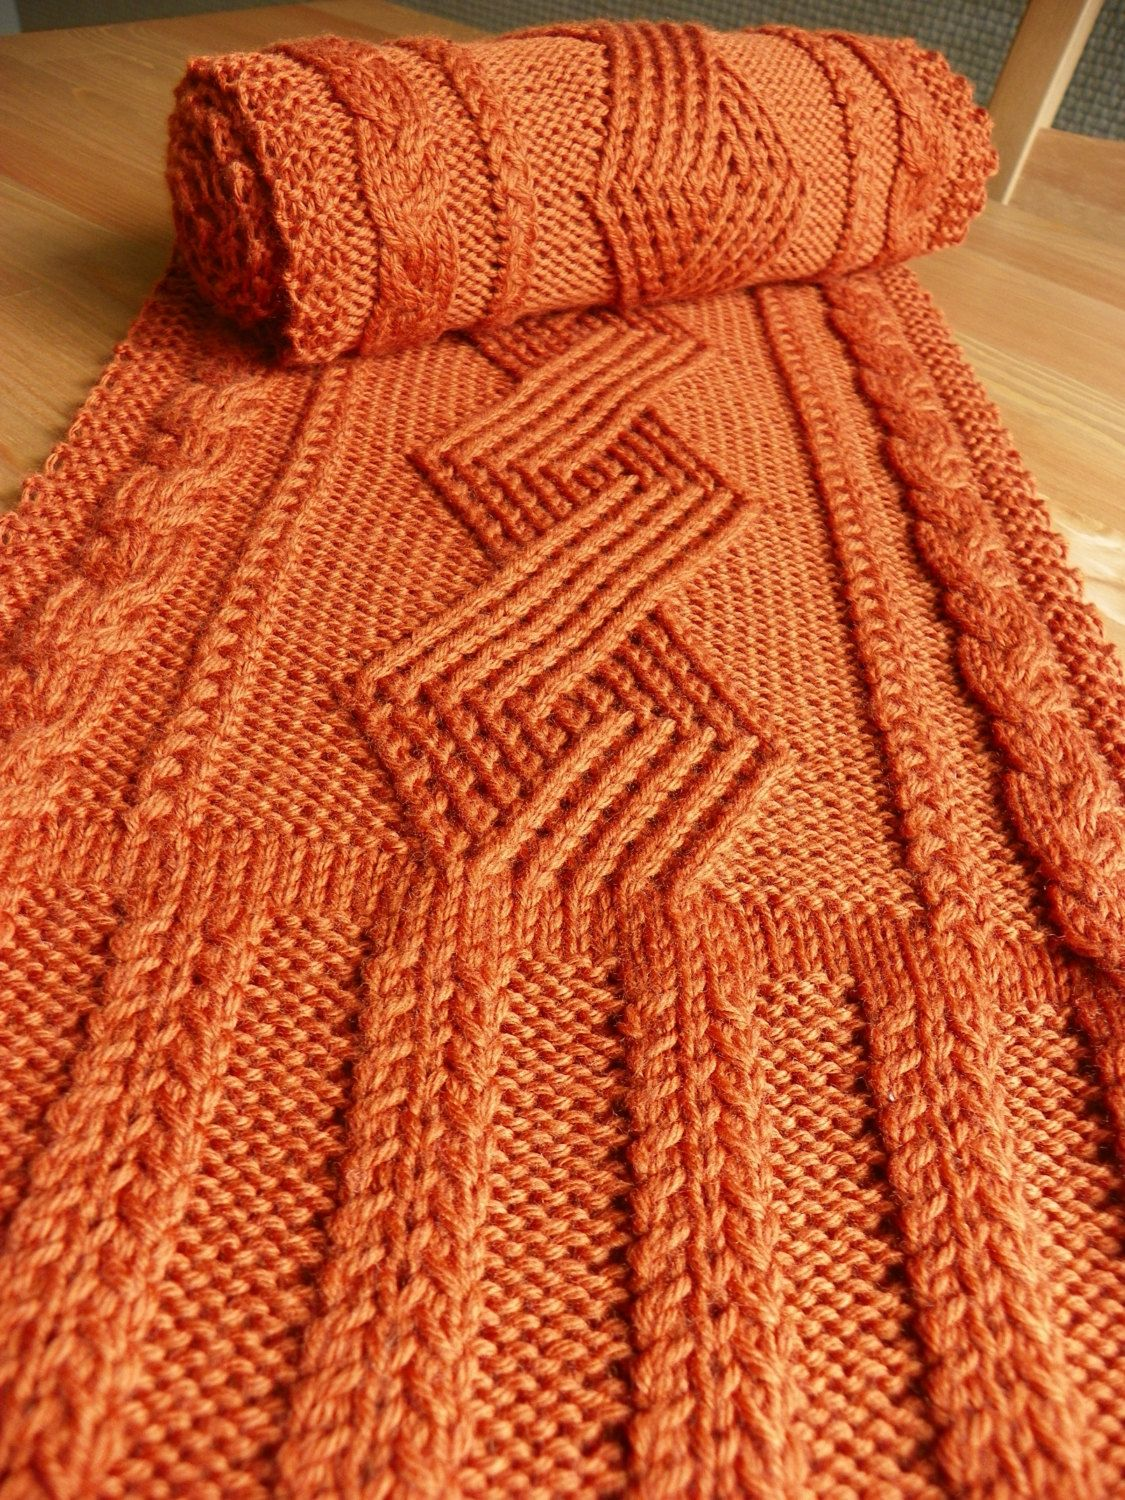 Pattern to knit kenworth mews cabled scarf dk weight yarn by pattern to knit kenworth mews cabled scarf dk weight yarn by suelillycreations bankloansurffo Image collections